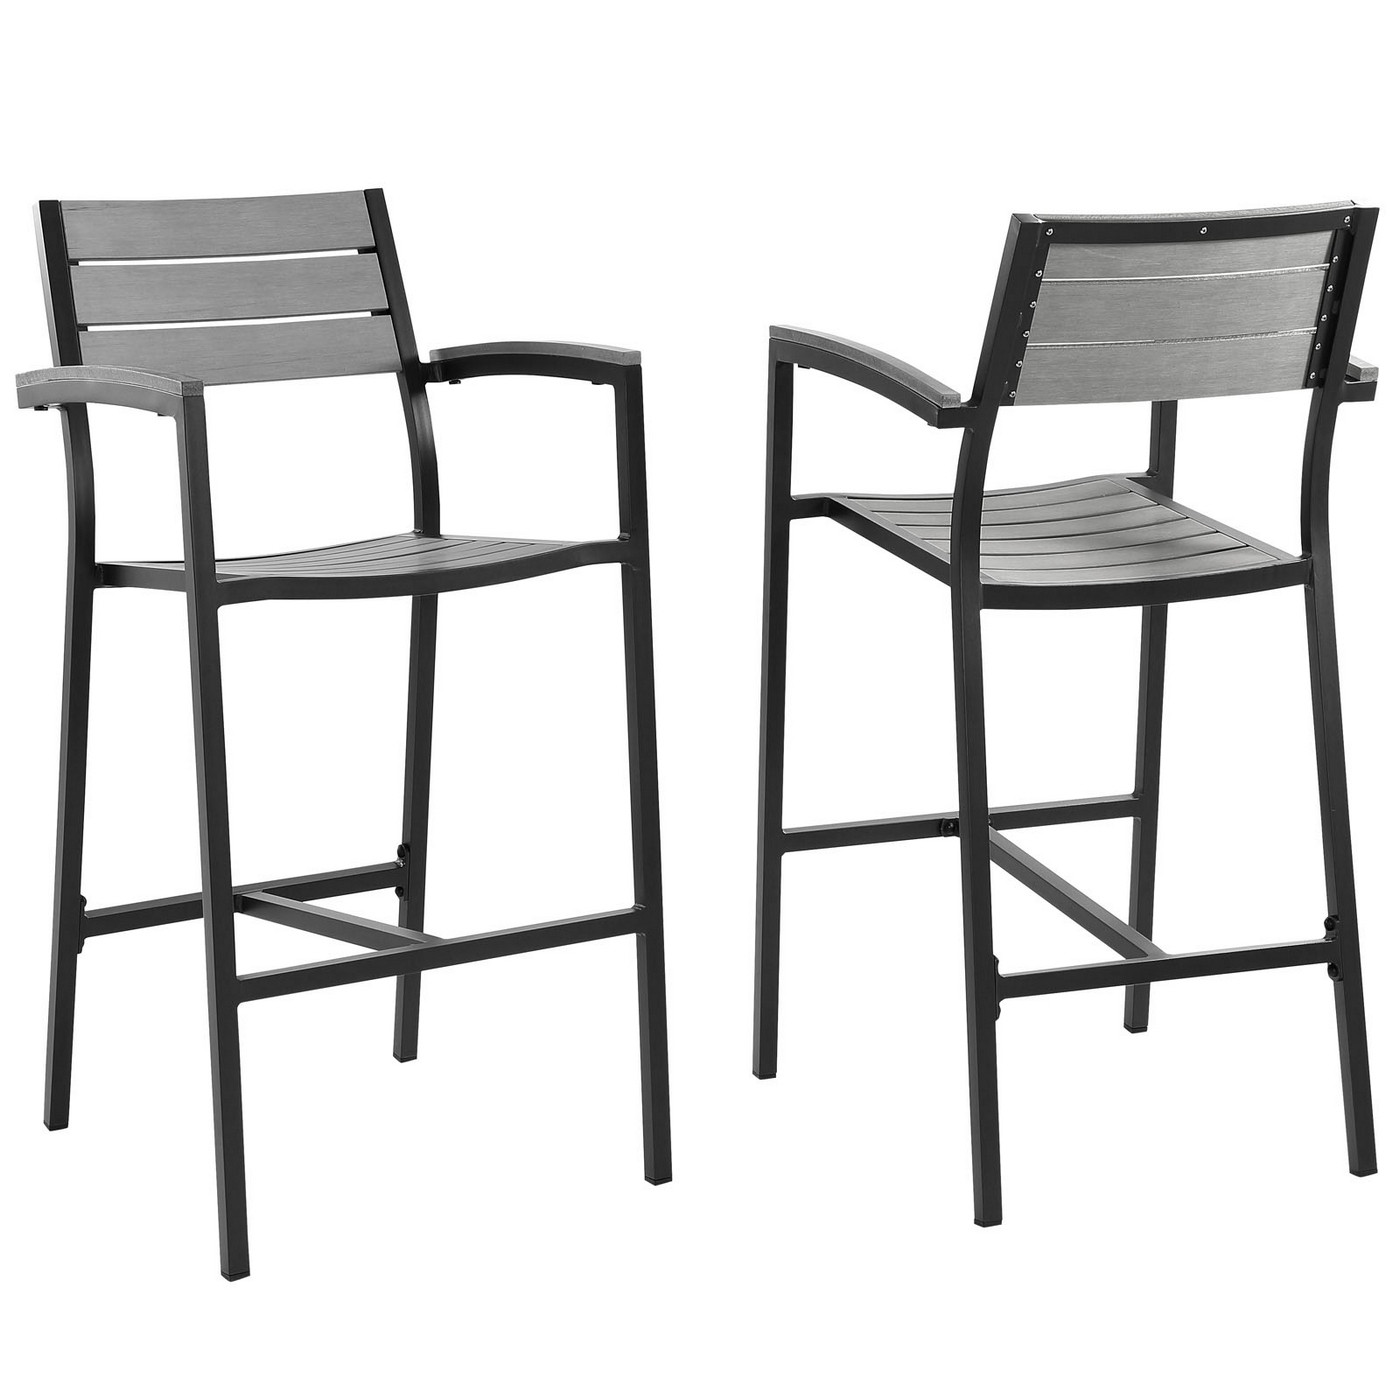 Best ideas about Patio Bar Stools . Save or Pin Set 2 Maine Rustic Wooden Plank Board Outdoor Patio Now.